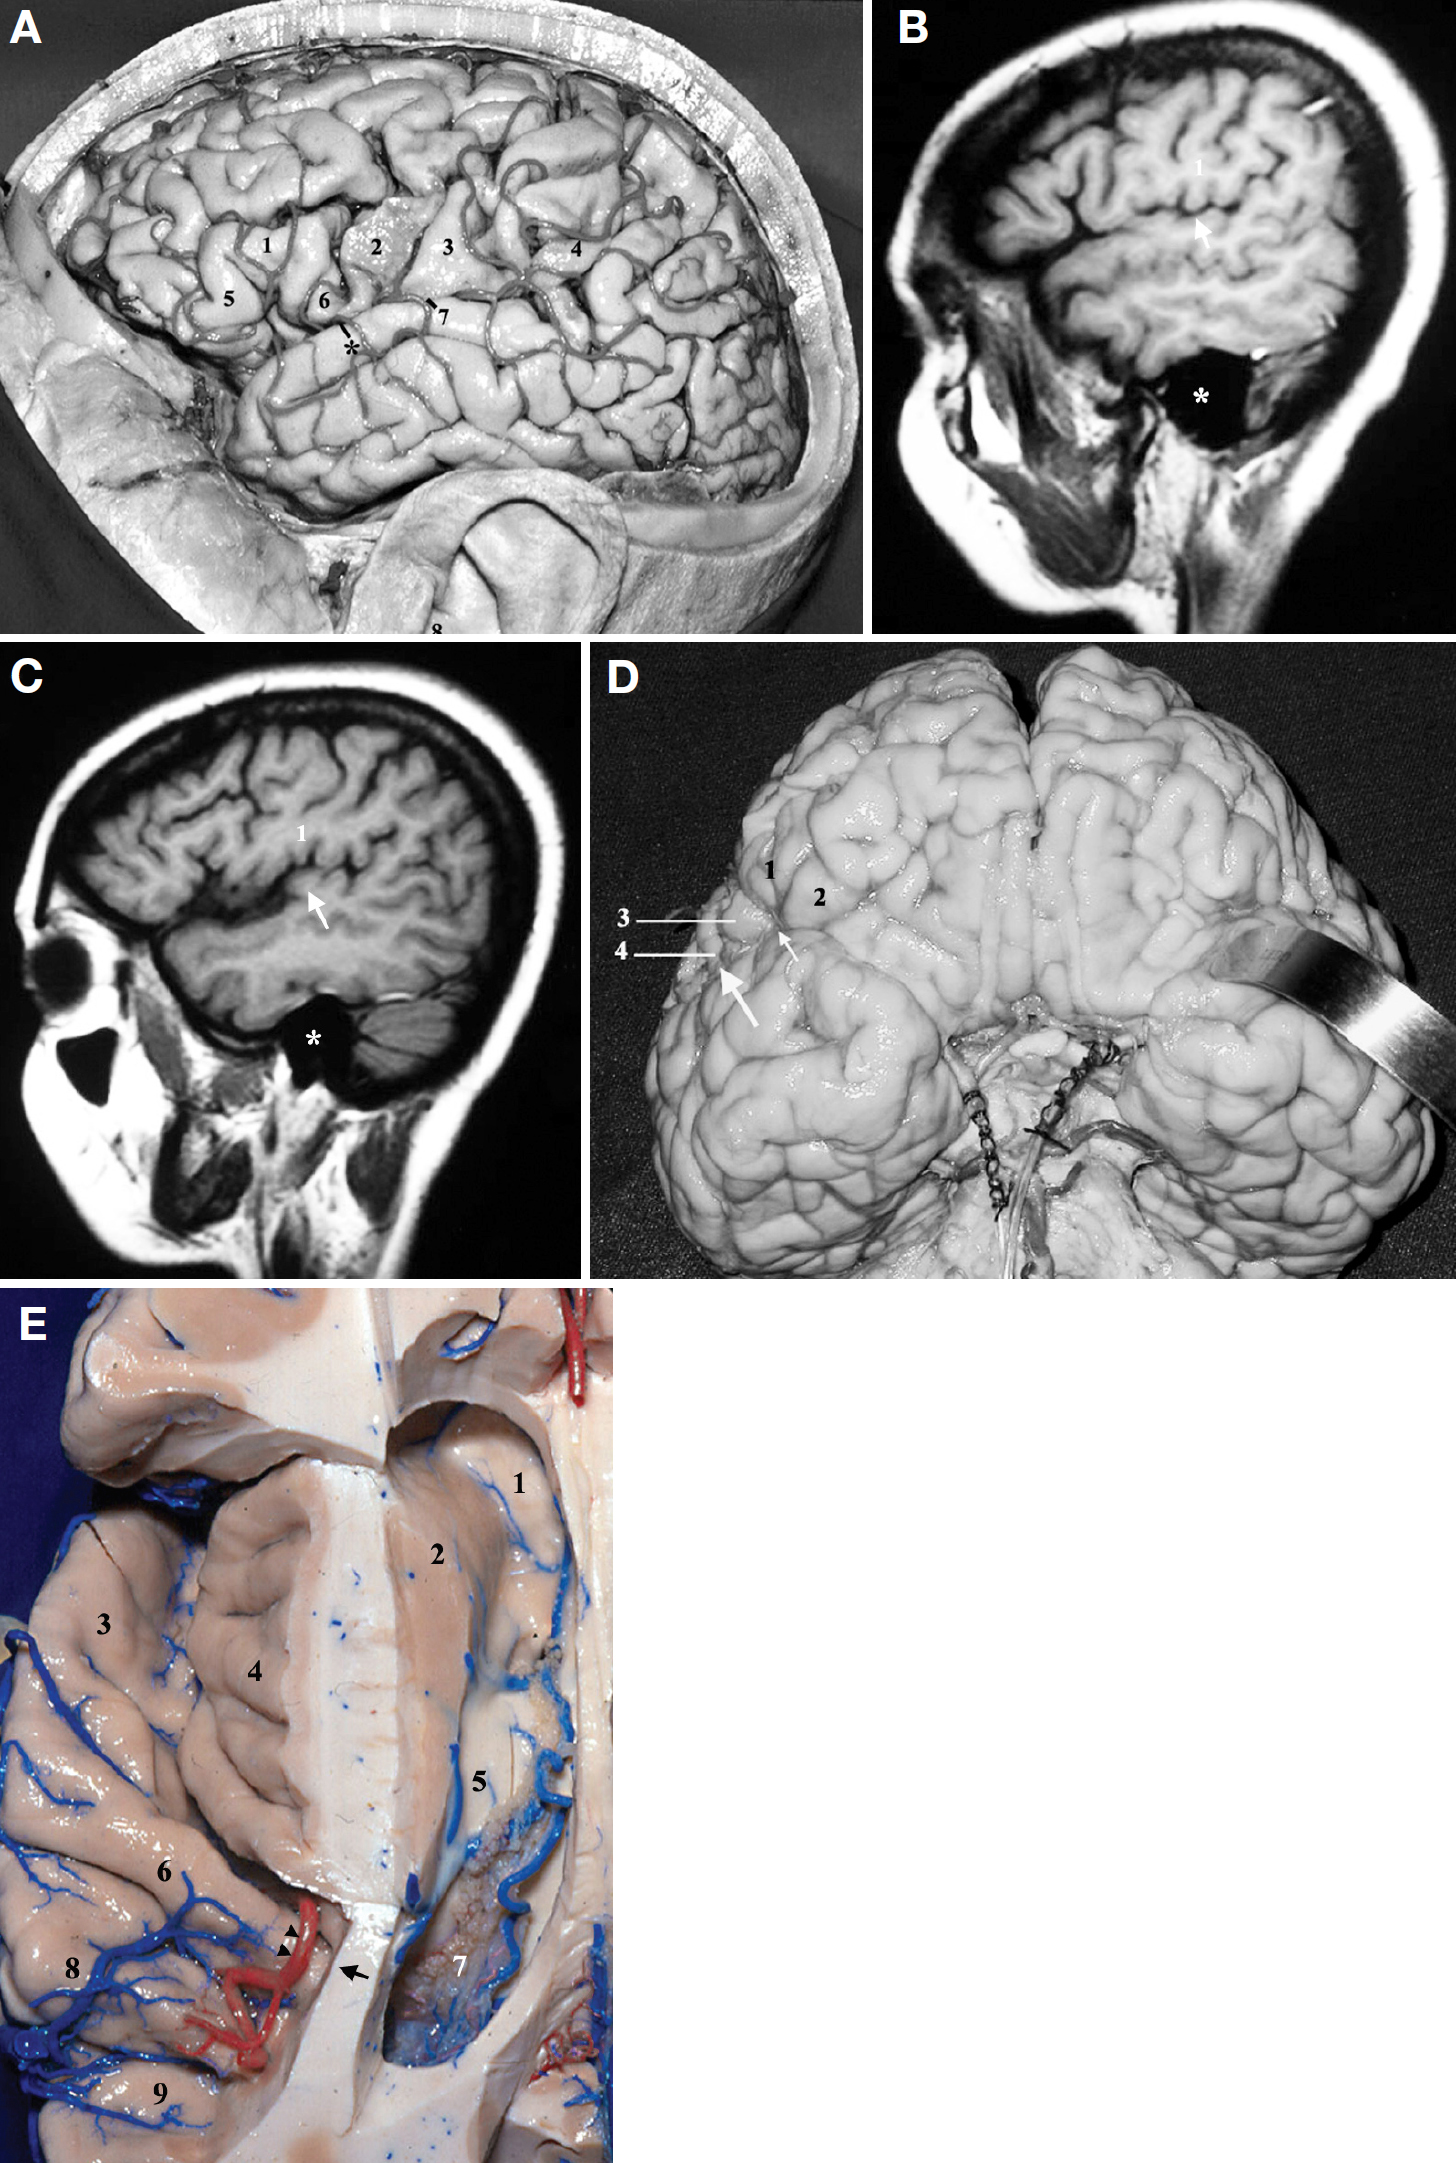 Figure 2. A, lateral view of the left cerebral hemisphere. 1, pars triangularis of the inferior frontal gyrus; 2, precentral gyrus; 3, postcentral gyrus; 4, supramarginal gyrus; 5, pars orbitalis; 6, pars opercularis; 7, junction between the superior temporal gyrus and the Heschl's gyrus; 8, external acoustic meatus. Asterisk, at this point, the planum polare starts to deviate medially. Note the large space in the sylvian fissure between the structures 1, 5, and 6. B, sagittal magnetic resonance imaging (MRI) scan at the surface of the left hemisphere. 1, postcentral gyrus. Asterisk, projection of the external acoustic meatus over the petrous temporal bone. Heschl's gyrus (arrow). C, sagittal MRI scan at the opercular level of the left hemisphere. 1, postcentral gyrus. Asterisk, projection of the external acoustic meatus over the petrous temporal bone. Heschl's gyrus (arrow). D, anterobasal view of the cerebrum. 1, pars triangularis; 2, pars orbitalis; 3, pars opercularis; 4, precentral gyrus. The large arrow indicates where the medial deviation of the planum polare begins. The small arrow indicates where the medial deviation of the planum polare intensifies. E, superior view of the left hemisphere. An axial cut has been made to expose the lateral ventricle. The frontal and parietal opercula have been removed to expose the insula and the temporal opercula. 1, rostrum of the corpus callosum; 2, head of the caudate nucleus; 3, planum polare; 4, insula; 5, thalamus; 6, Heschl's gyrus; 7, choroid plexus of the atrium of the lateral ventricle covering the pulvinar of the thalamus; 8, middle transverse temporal gyrus; 9, posterior transverse temporal gyrus. The arrow indicates the medial end of the Heschl's gyrus that points toward the posterior limb of the internal capsule and toward the atrium of the lateral ventricle. The arrowheads indicate the location of the angiographic sylvian point. (Images courtesy of AL Rhoton, Jr.)